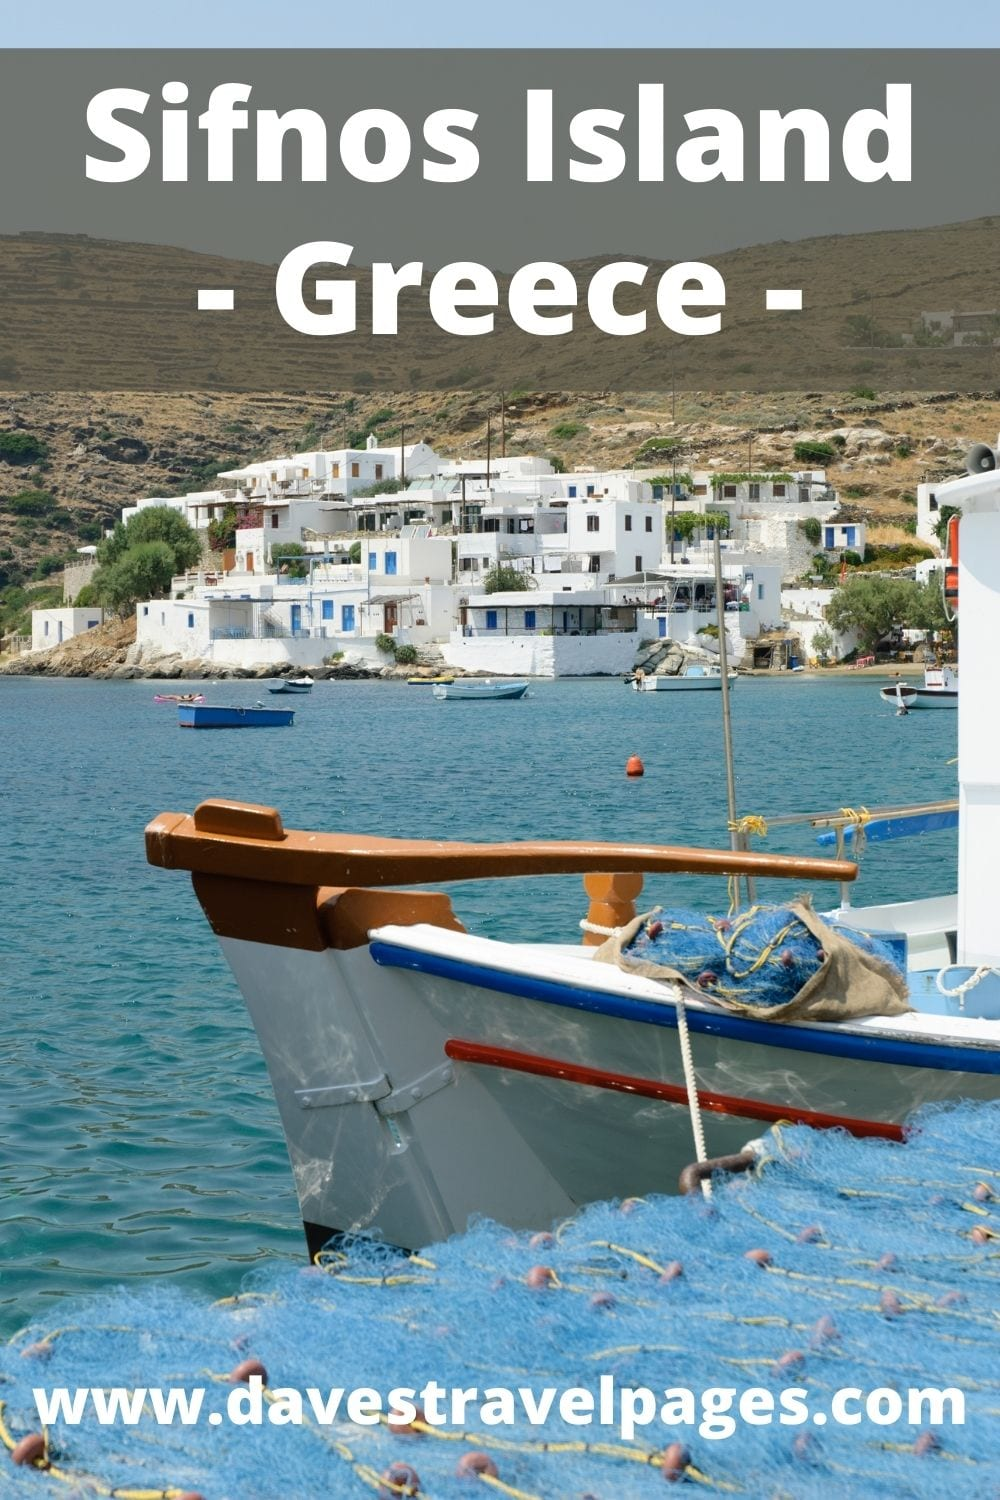 Sifnos Ferry Guide: How to get from Athens to Sifnos